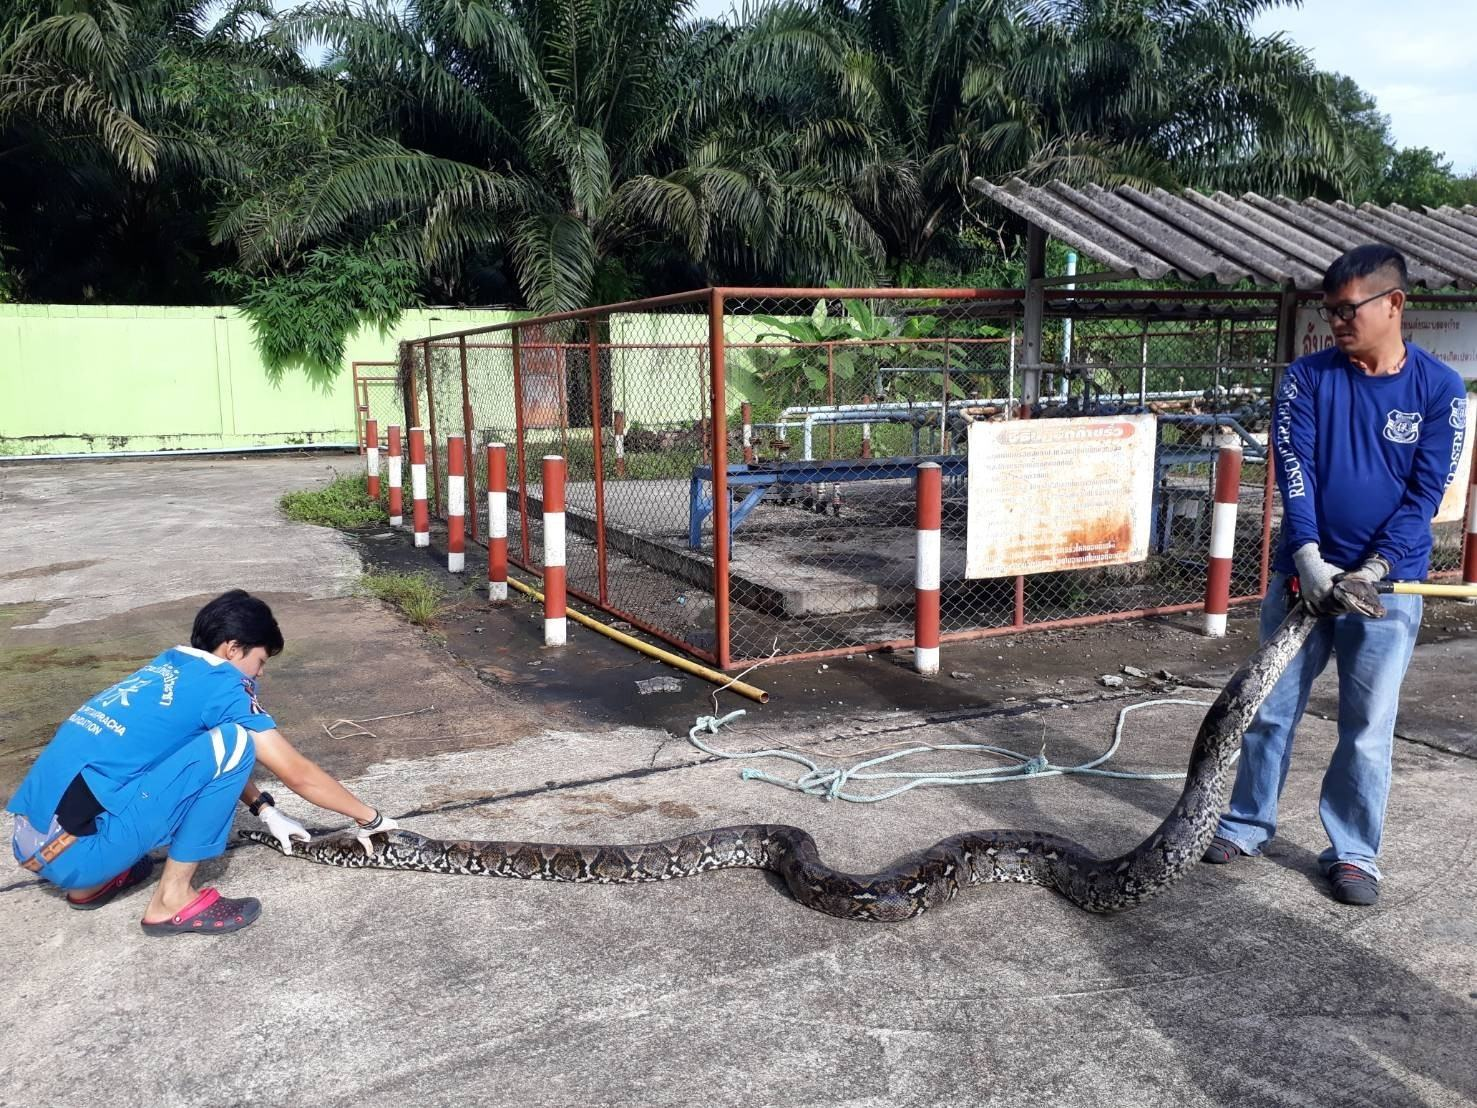 Six metre, duck-eating python caught at a Krabi gas station | The Thaiger